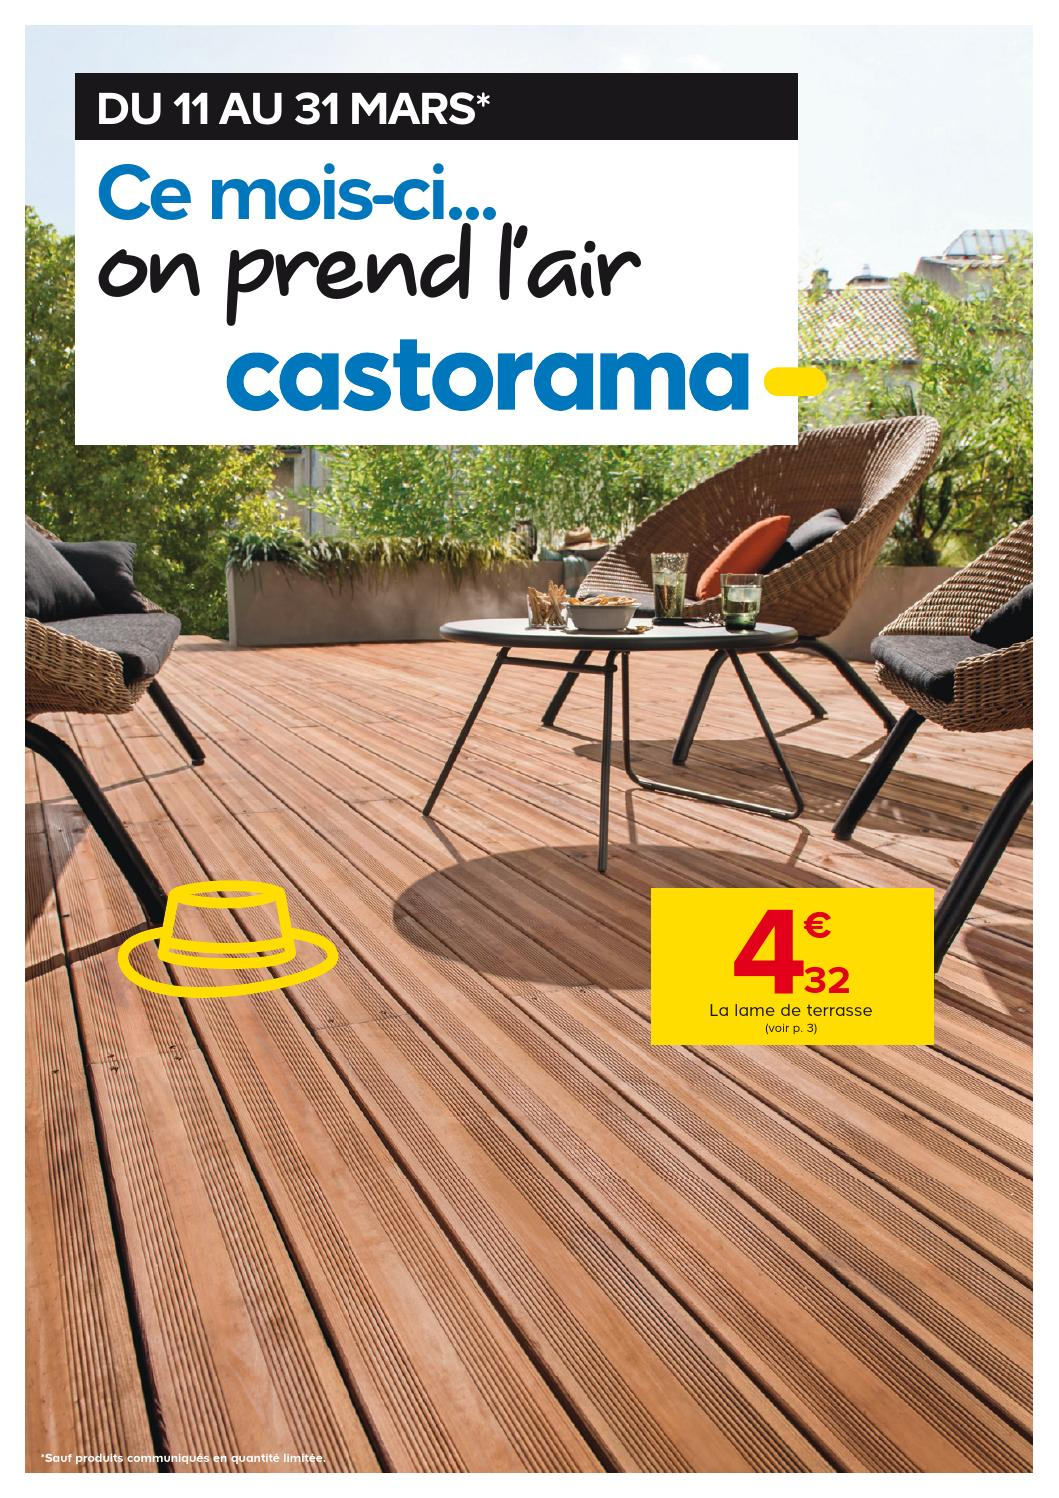 Lame De Terrasse Castorama Castorama Catalogue 11 31mars2015 By Promocatalogues Issuu